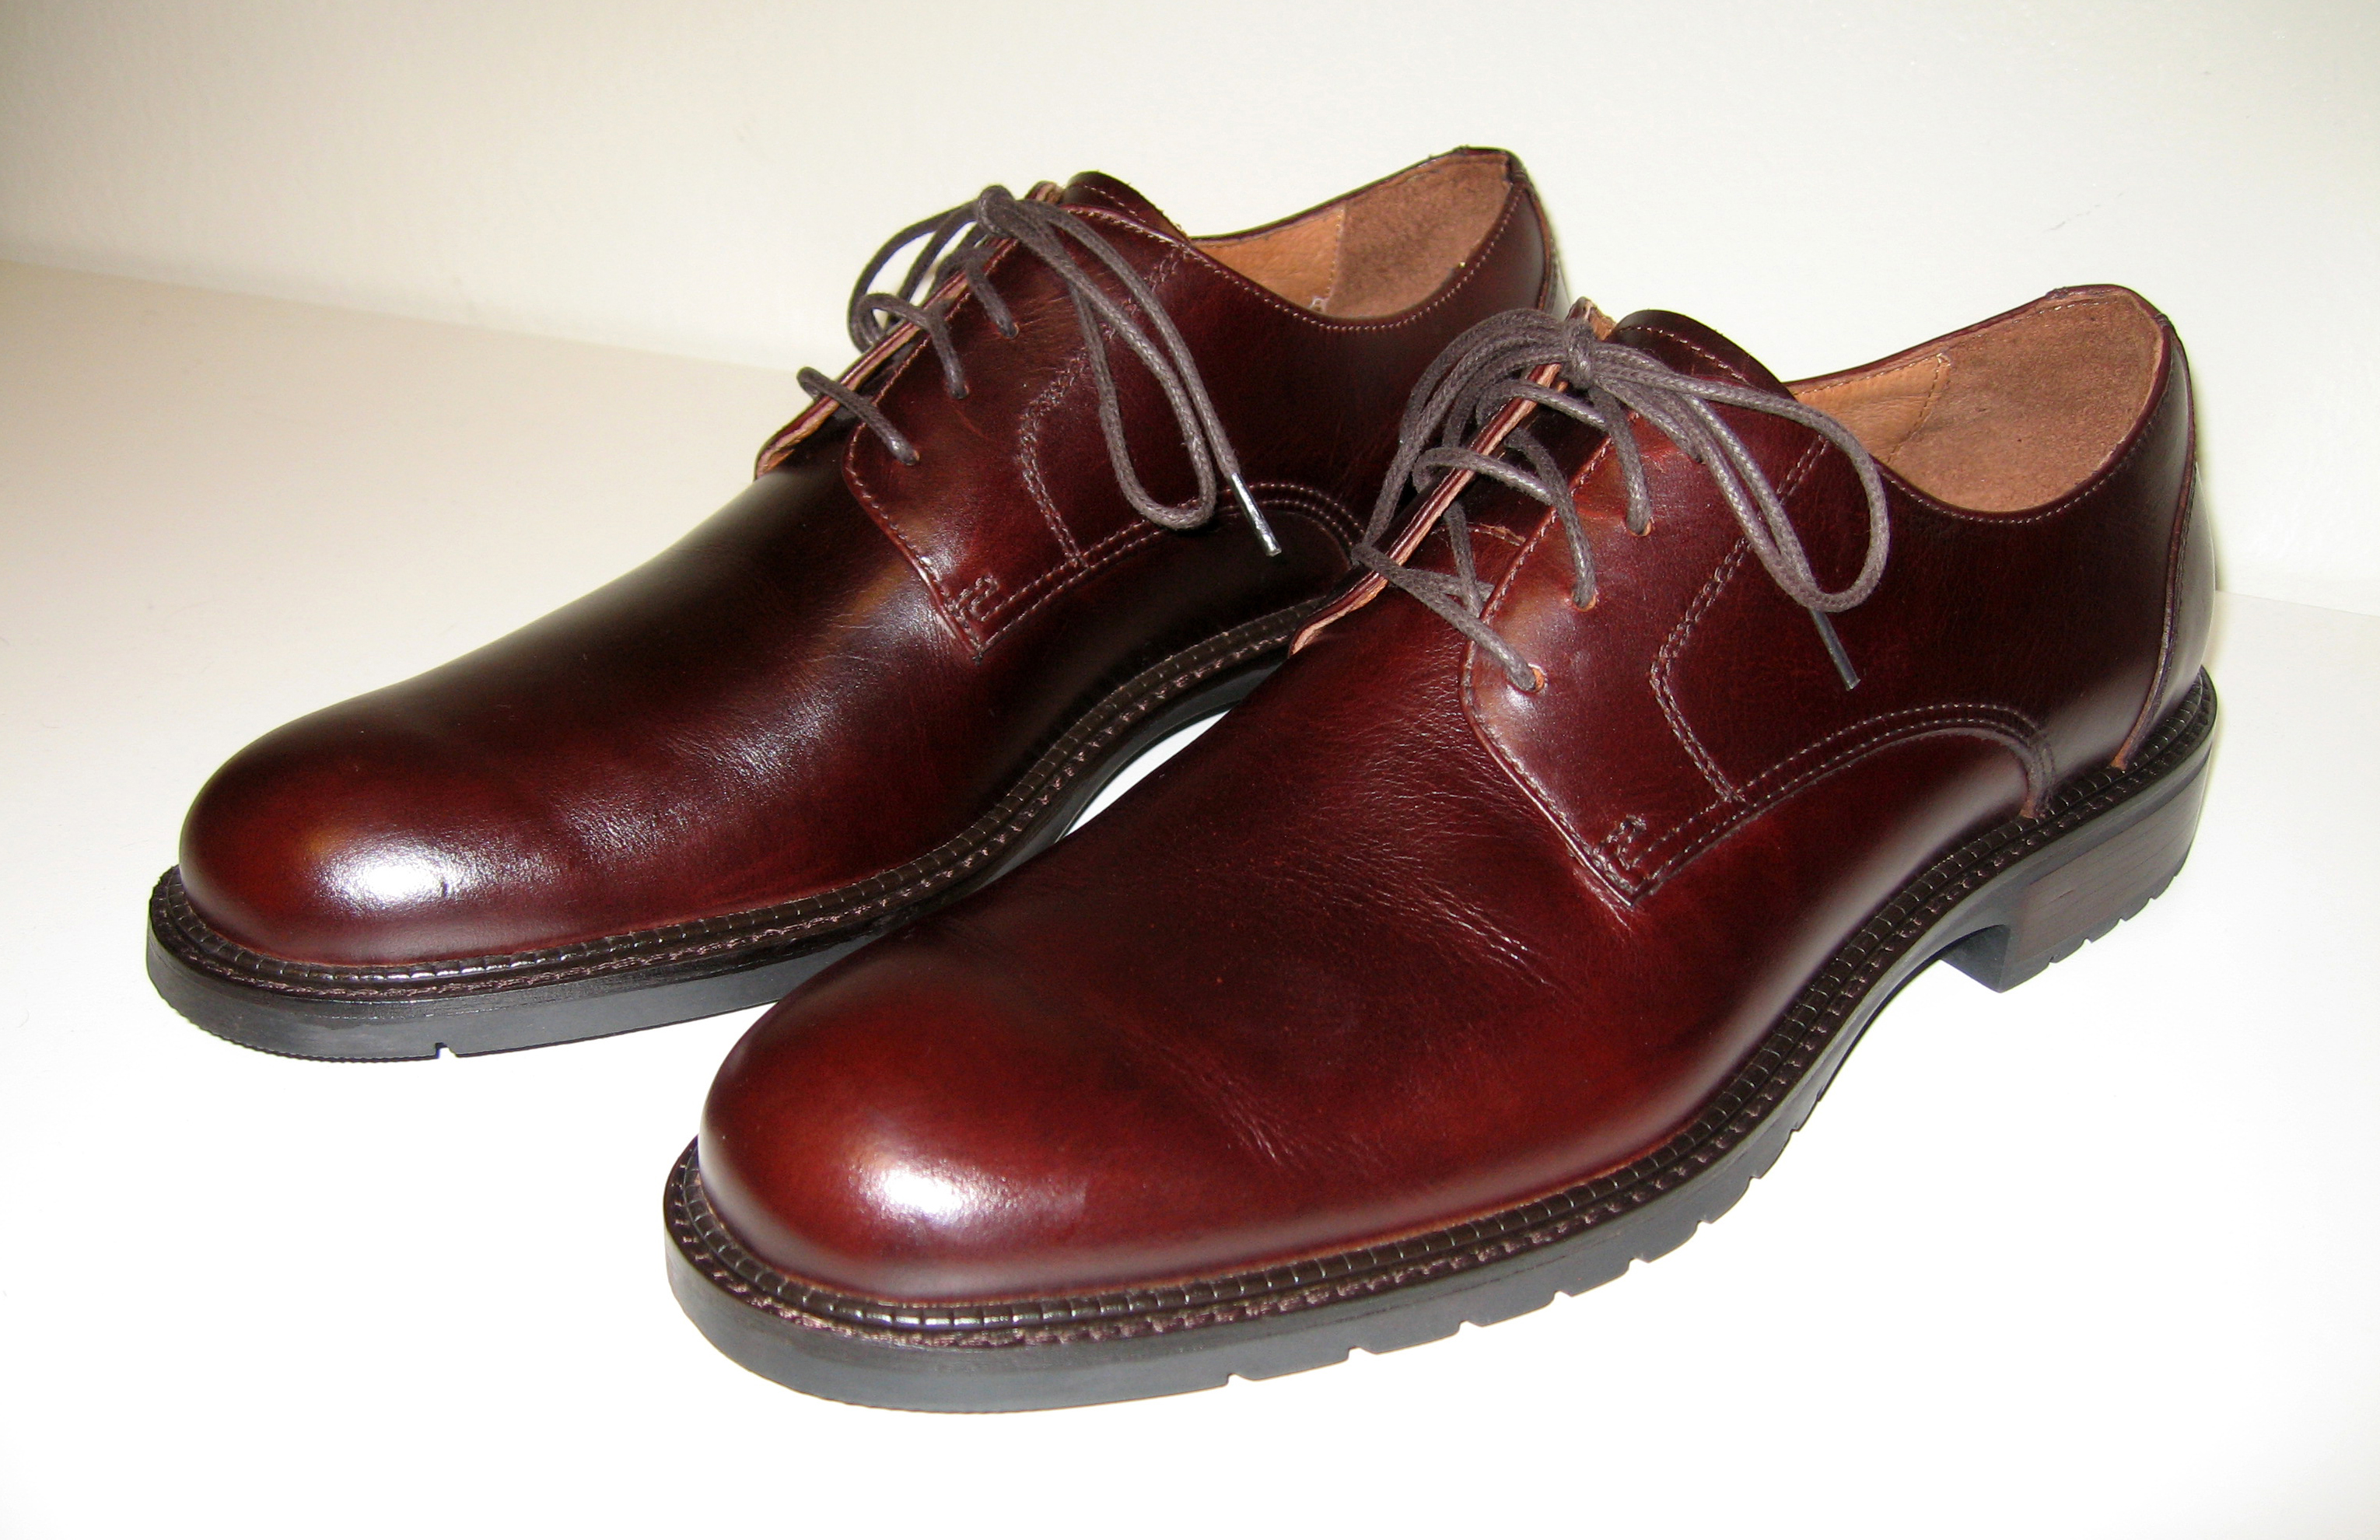 Mens brown derby leather shoes